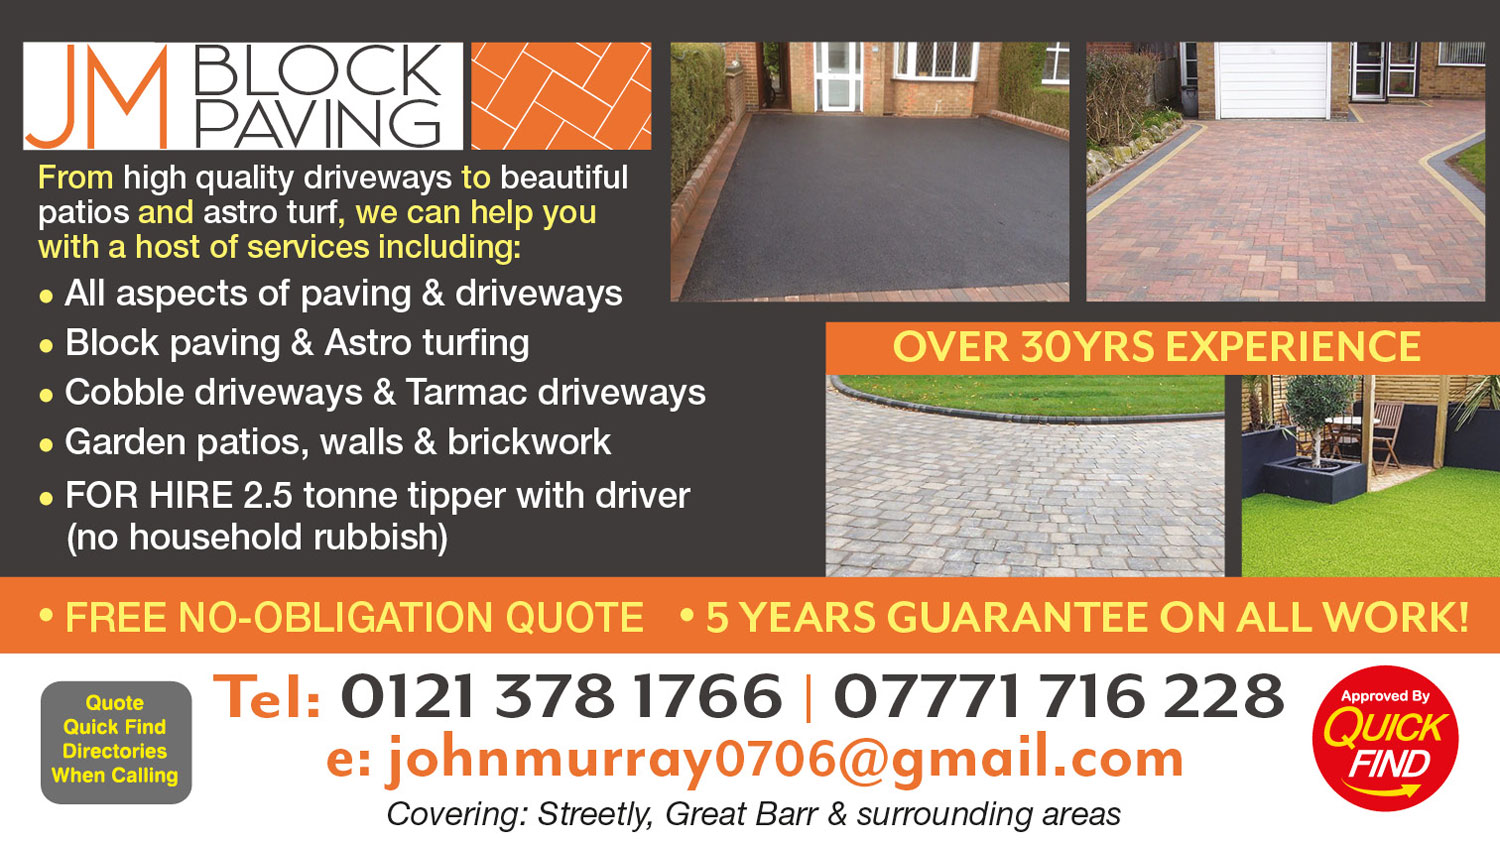 JM Block Paving